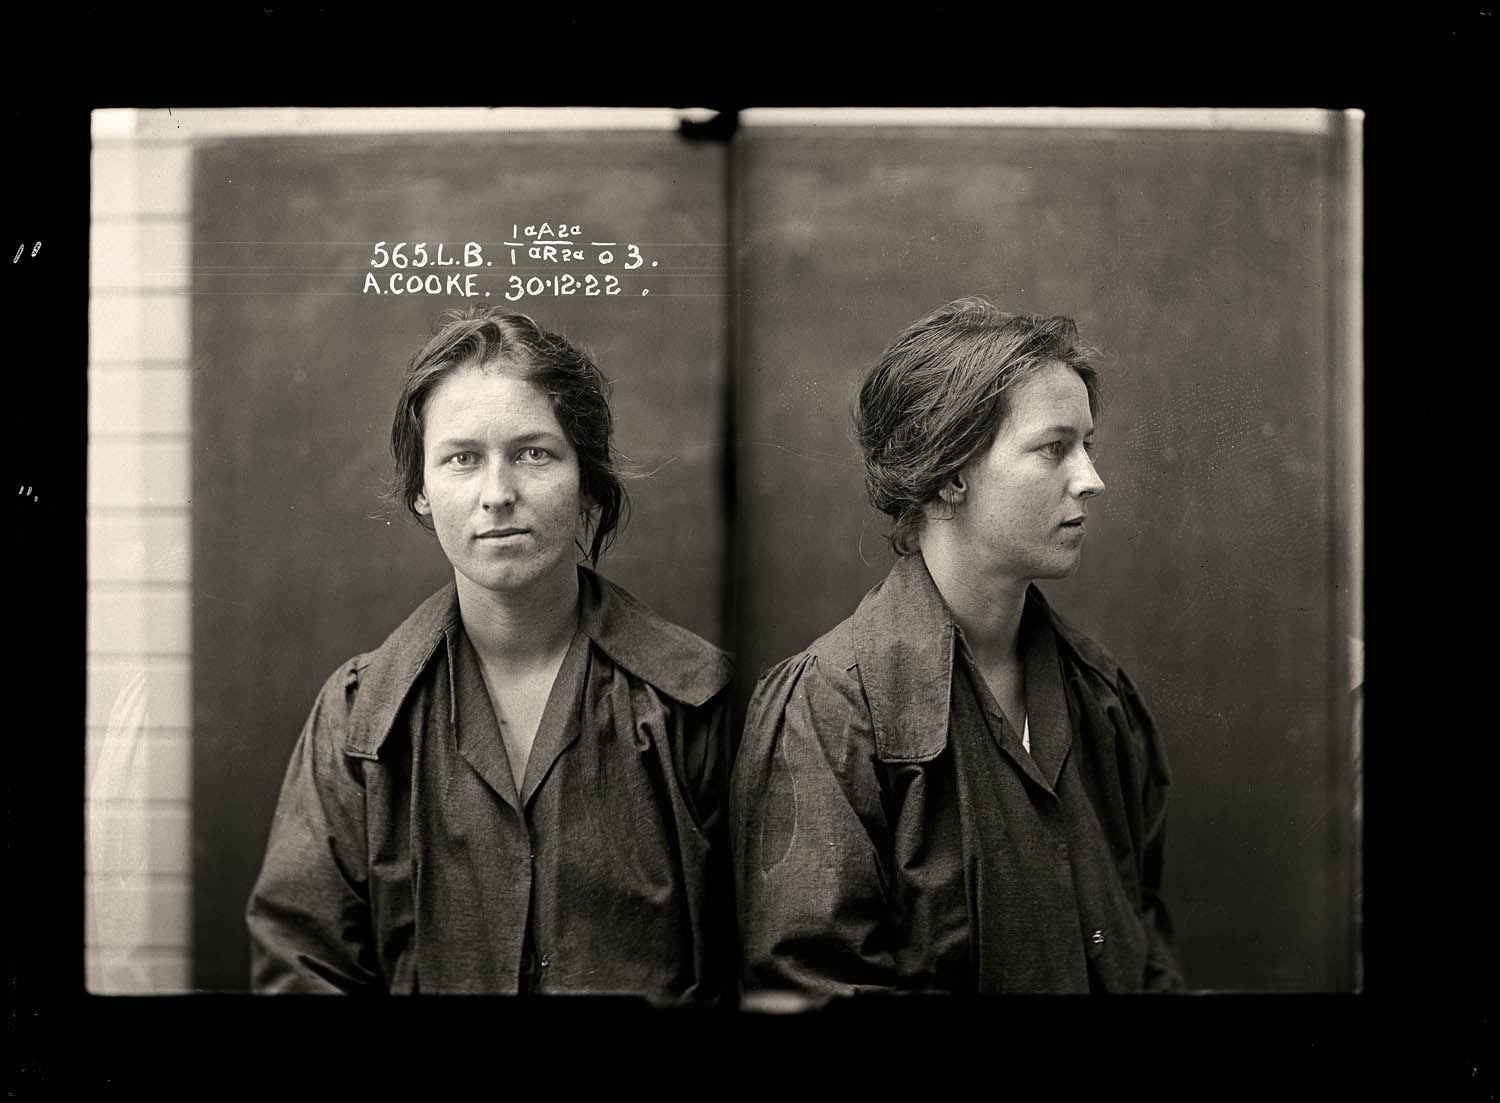 Alice Adeline Cooke, criminal record number 565LB, 30 December 1922. State Reformatory for Women, Long Bay, NSW